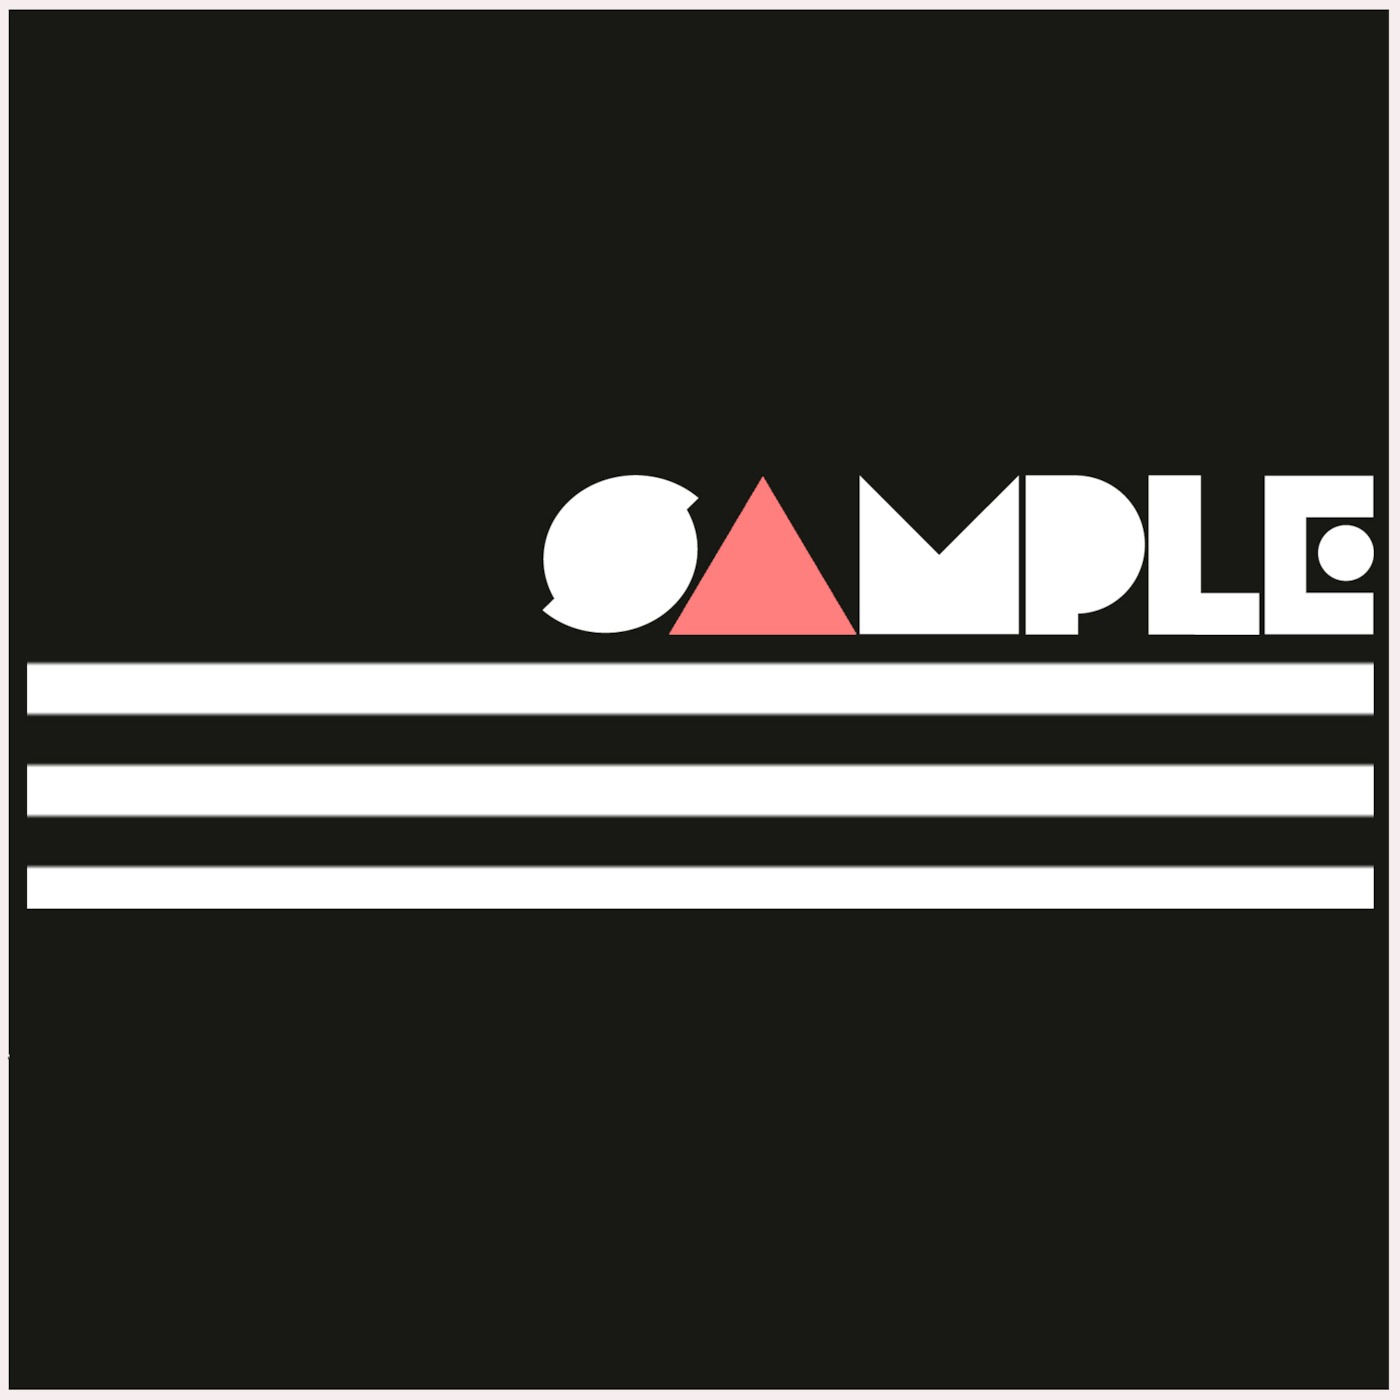 Sample Newcastle Podcast